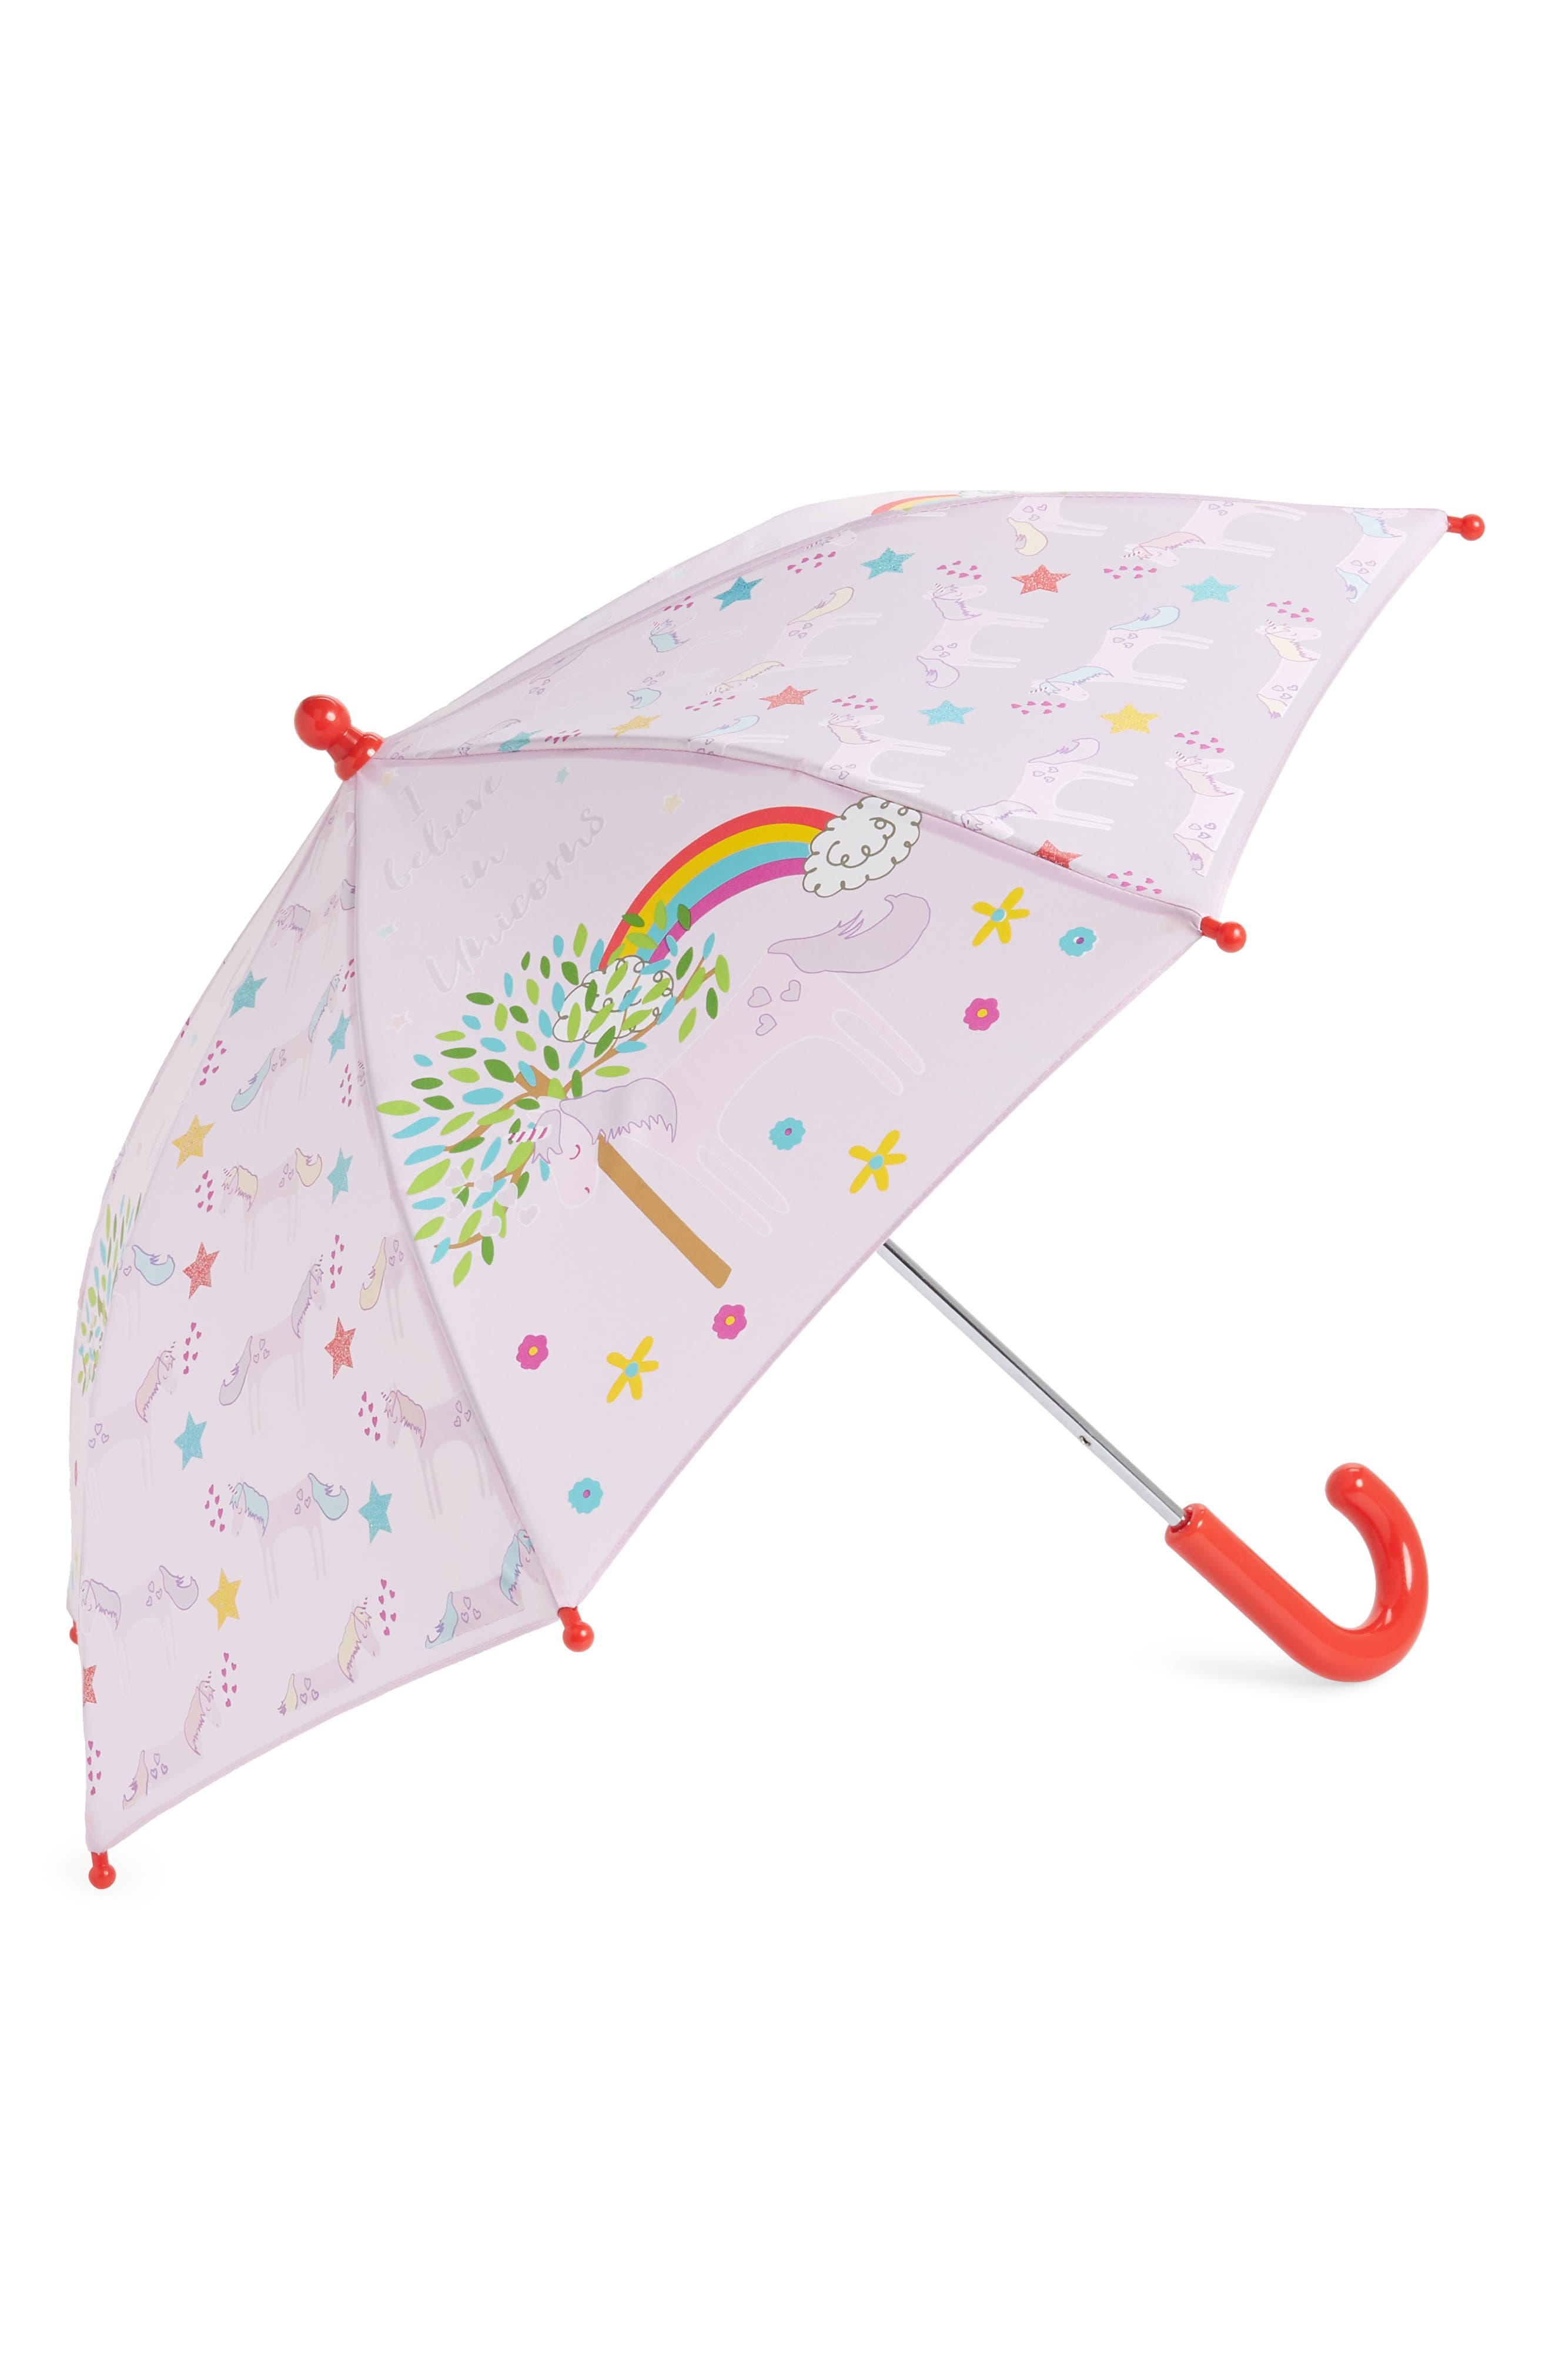 Unicorn Color Changing Umbrella,                             Main thumbnail 1, color,                             680